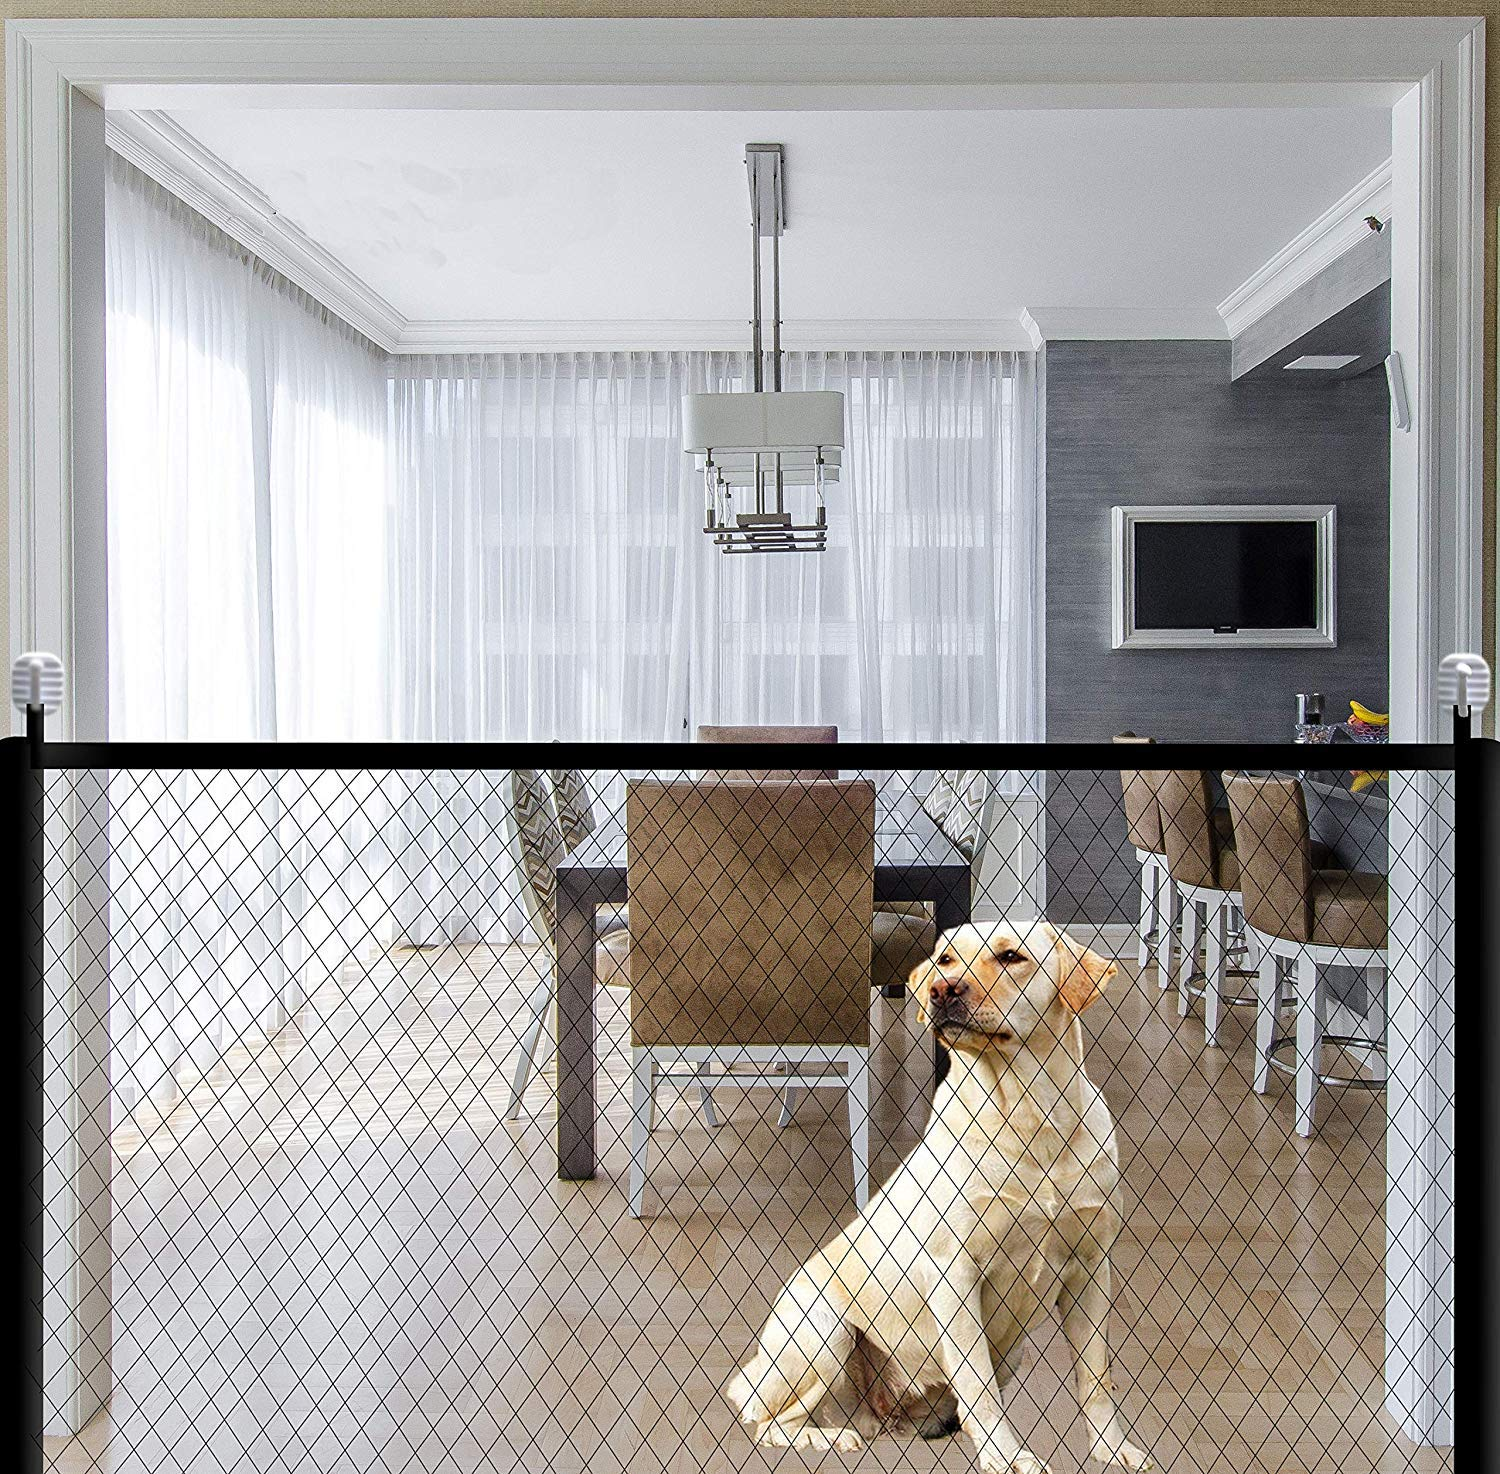 Pet Isolation Mesh Dog Gate for House Indoor Stair Doorway Use. Baby Gate Pet Gate for Dogs,Indoor Outdoor Retractable Baby Gate 43.3 x 28.3 inch Portable Mesh Folding Safety Fence